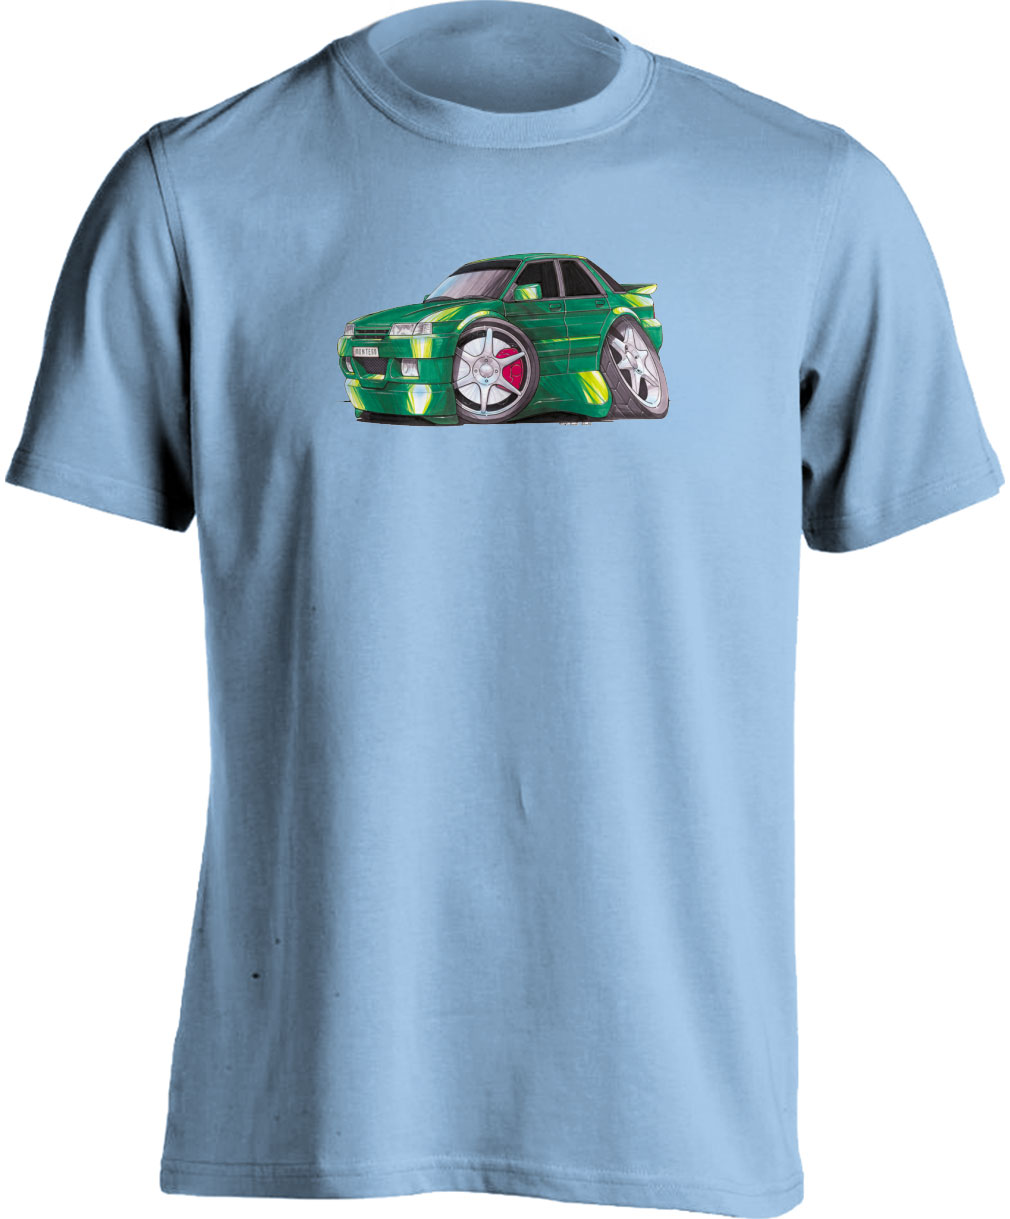 Koolart Austin Rover Montego Green– 1345 Adults T Shirt